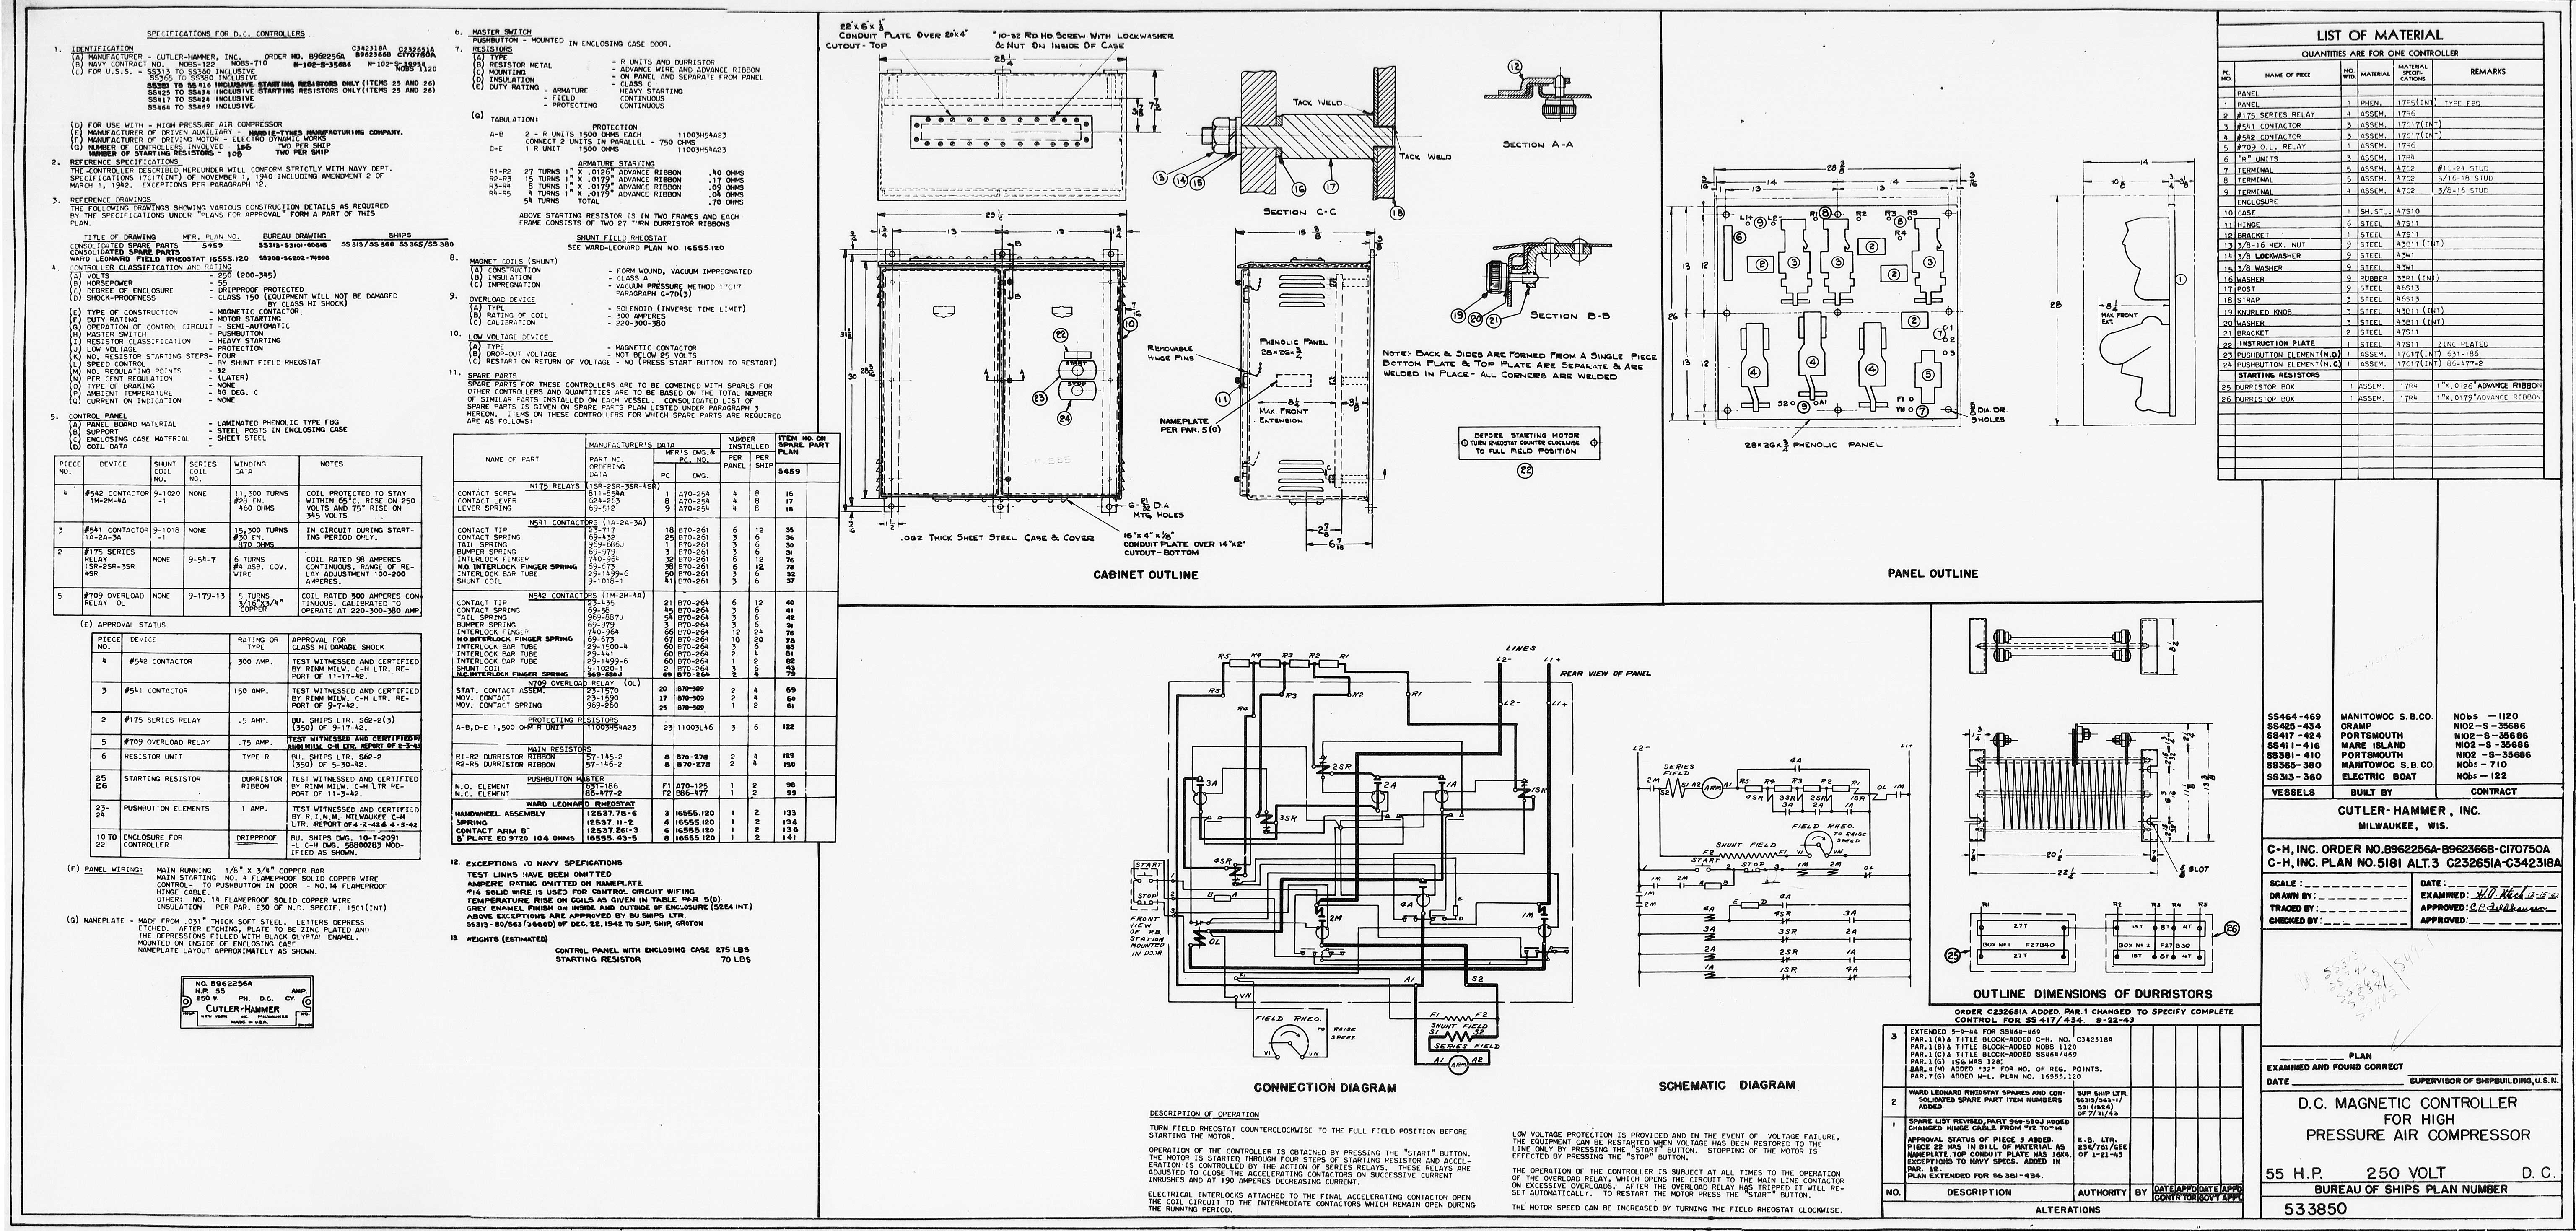 Uss Pampanito High Pressure Air Compressor Drawings Cutler Hammer Schematics Hp Magnetic Controller Basic533850 32429 11 0134